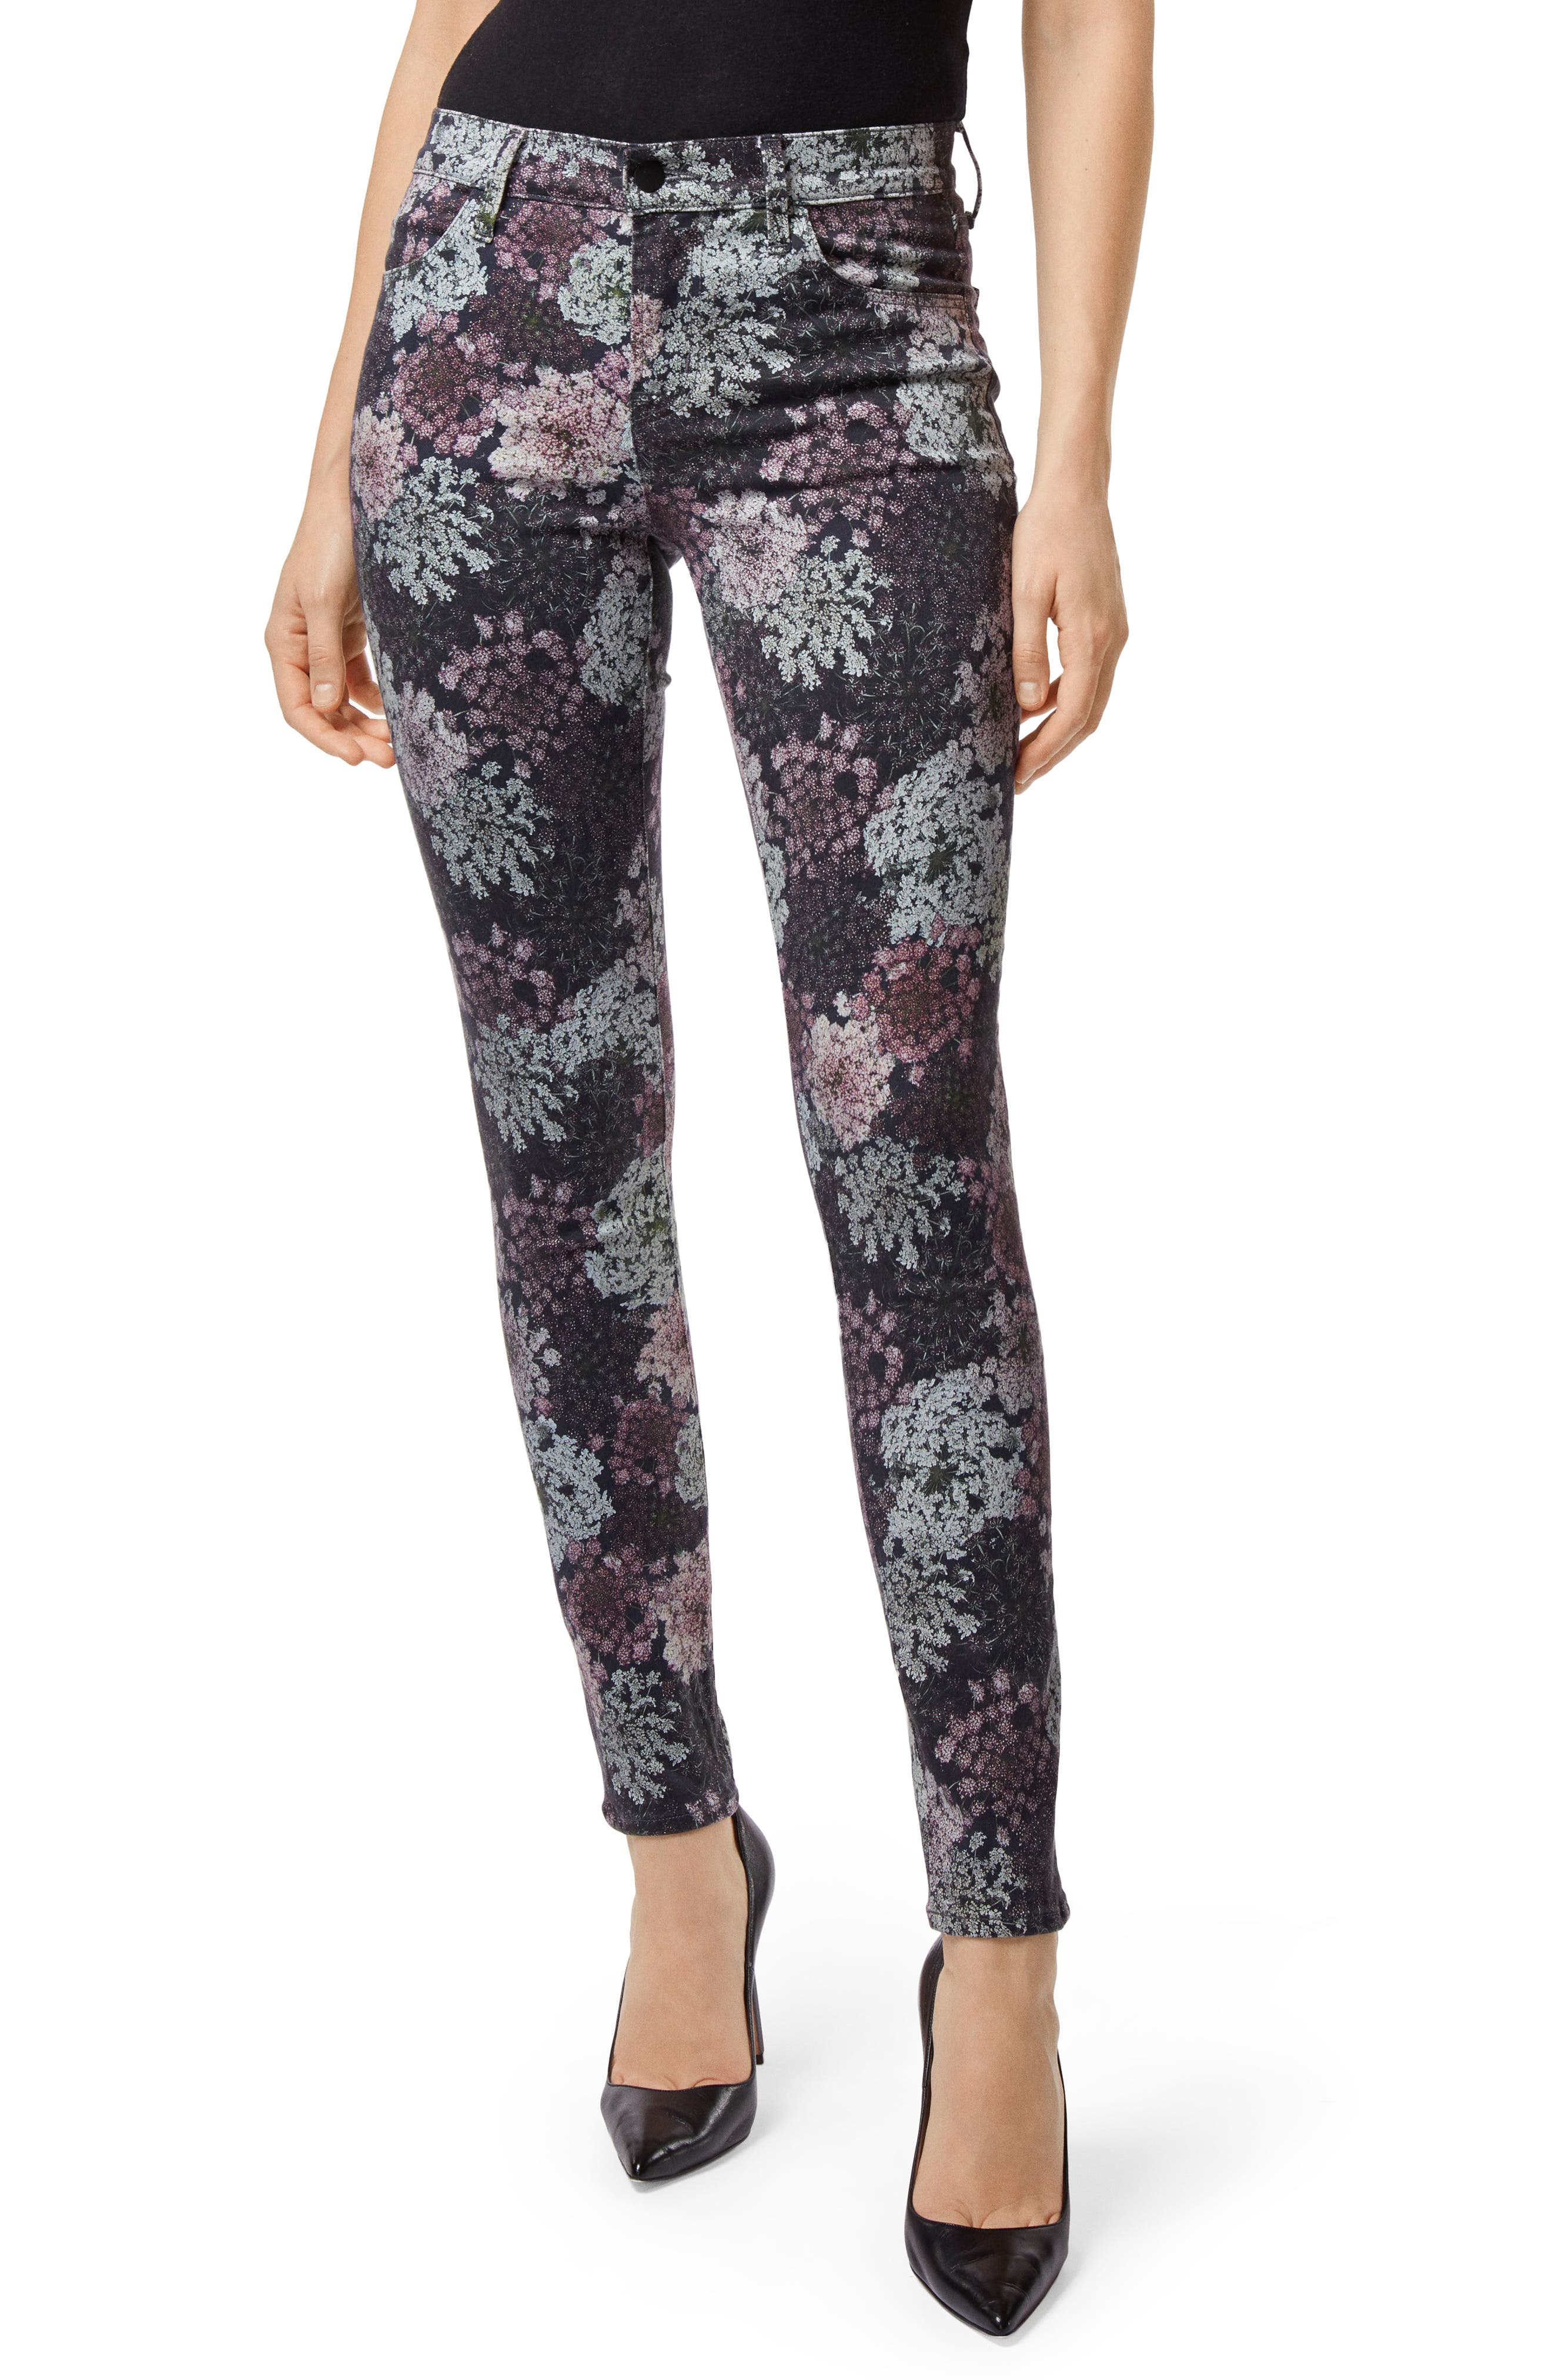 620 Floral-Print Mid-Rise Super Skinny Jeans in Queen Anne'S Lace